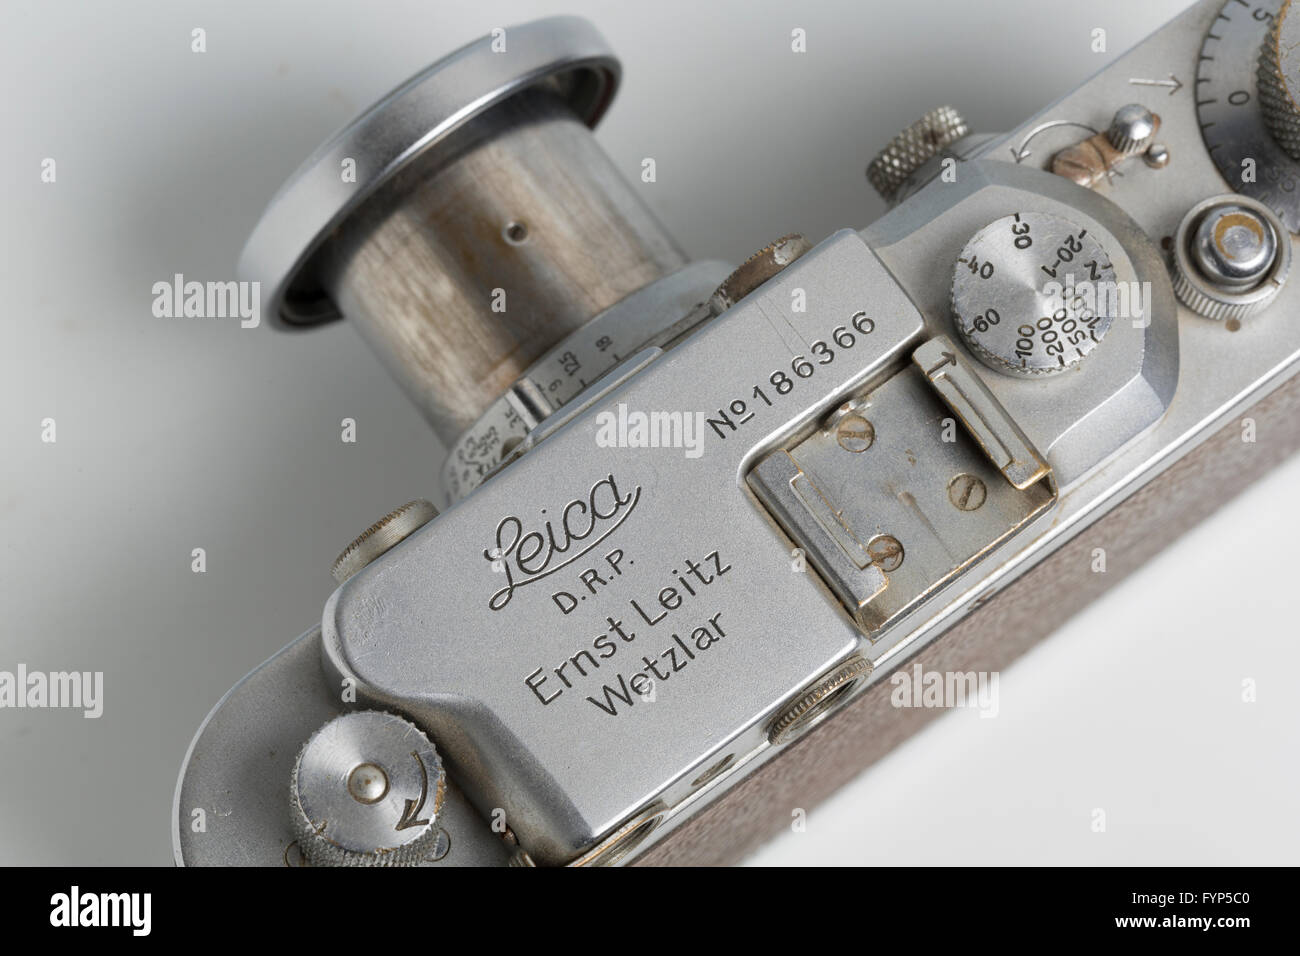 Leica lllA rangefinder camera from 1936 with an Elmar 5cm collapsible lens - Stock Image